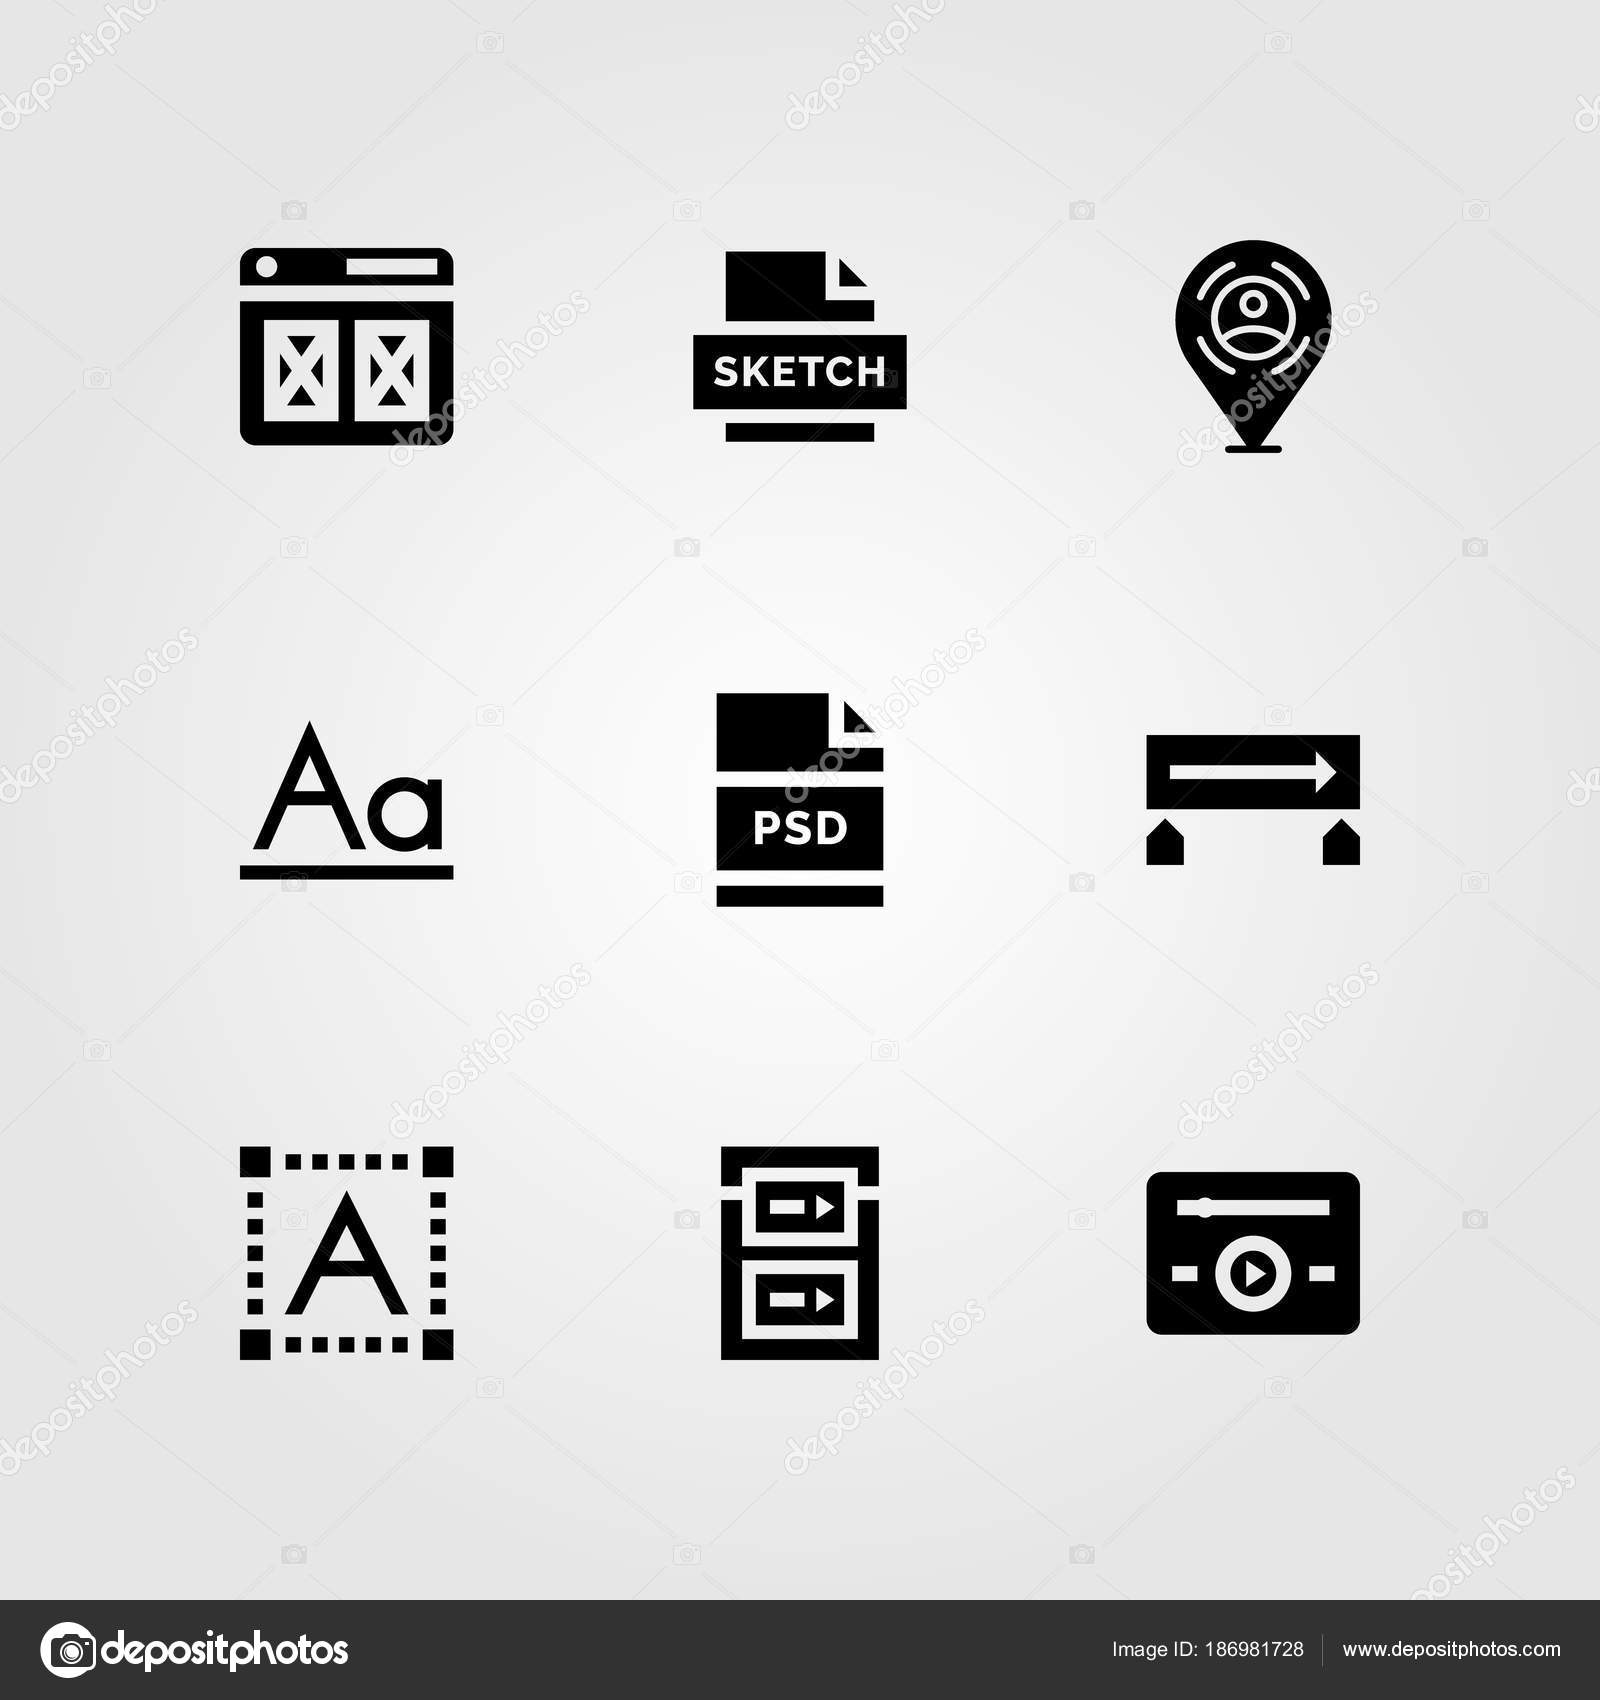 Web Design vector icon set  gradient, font, music player and browser